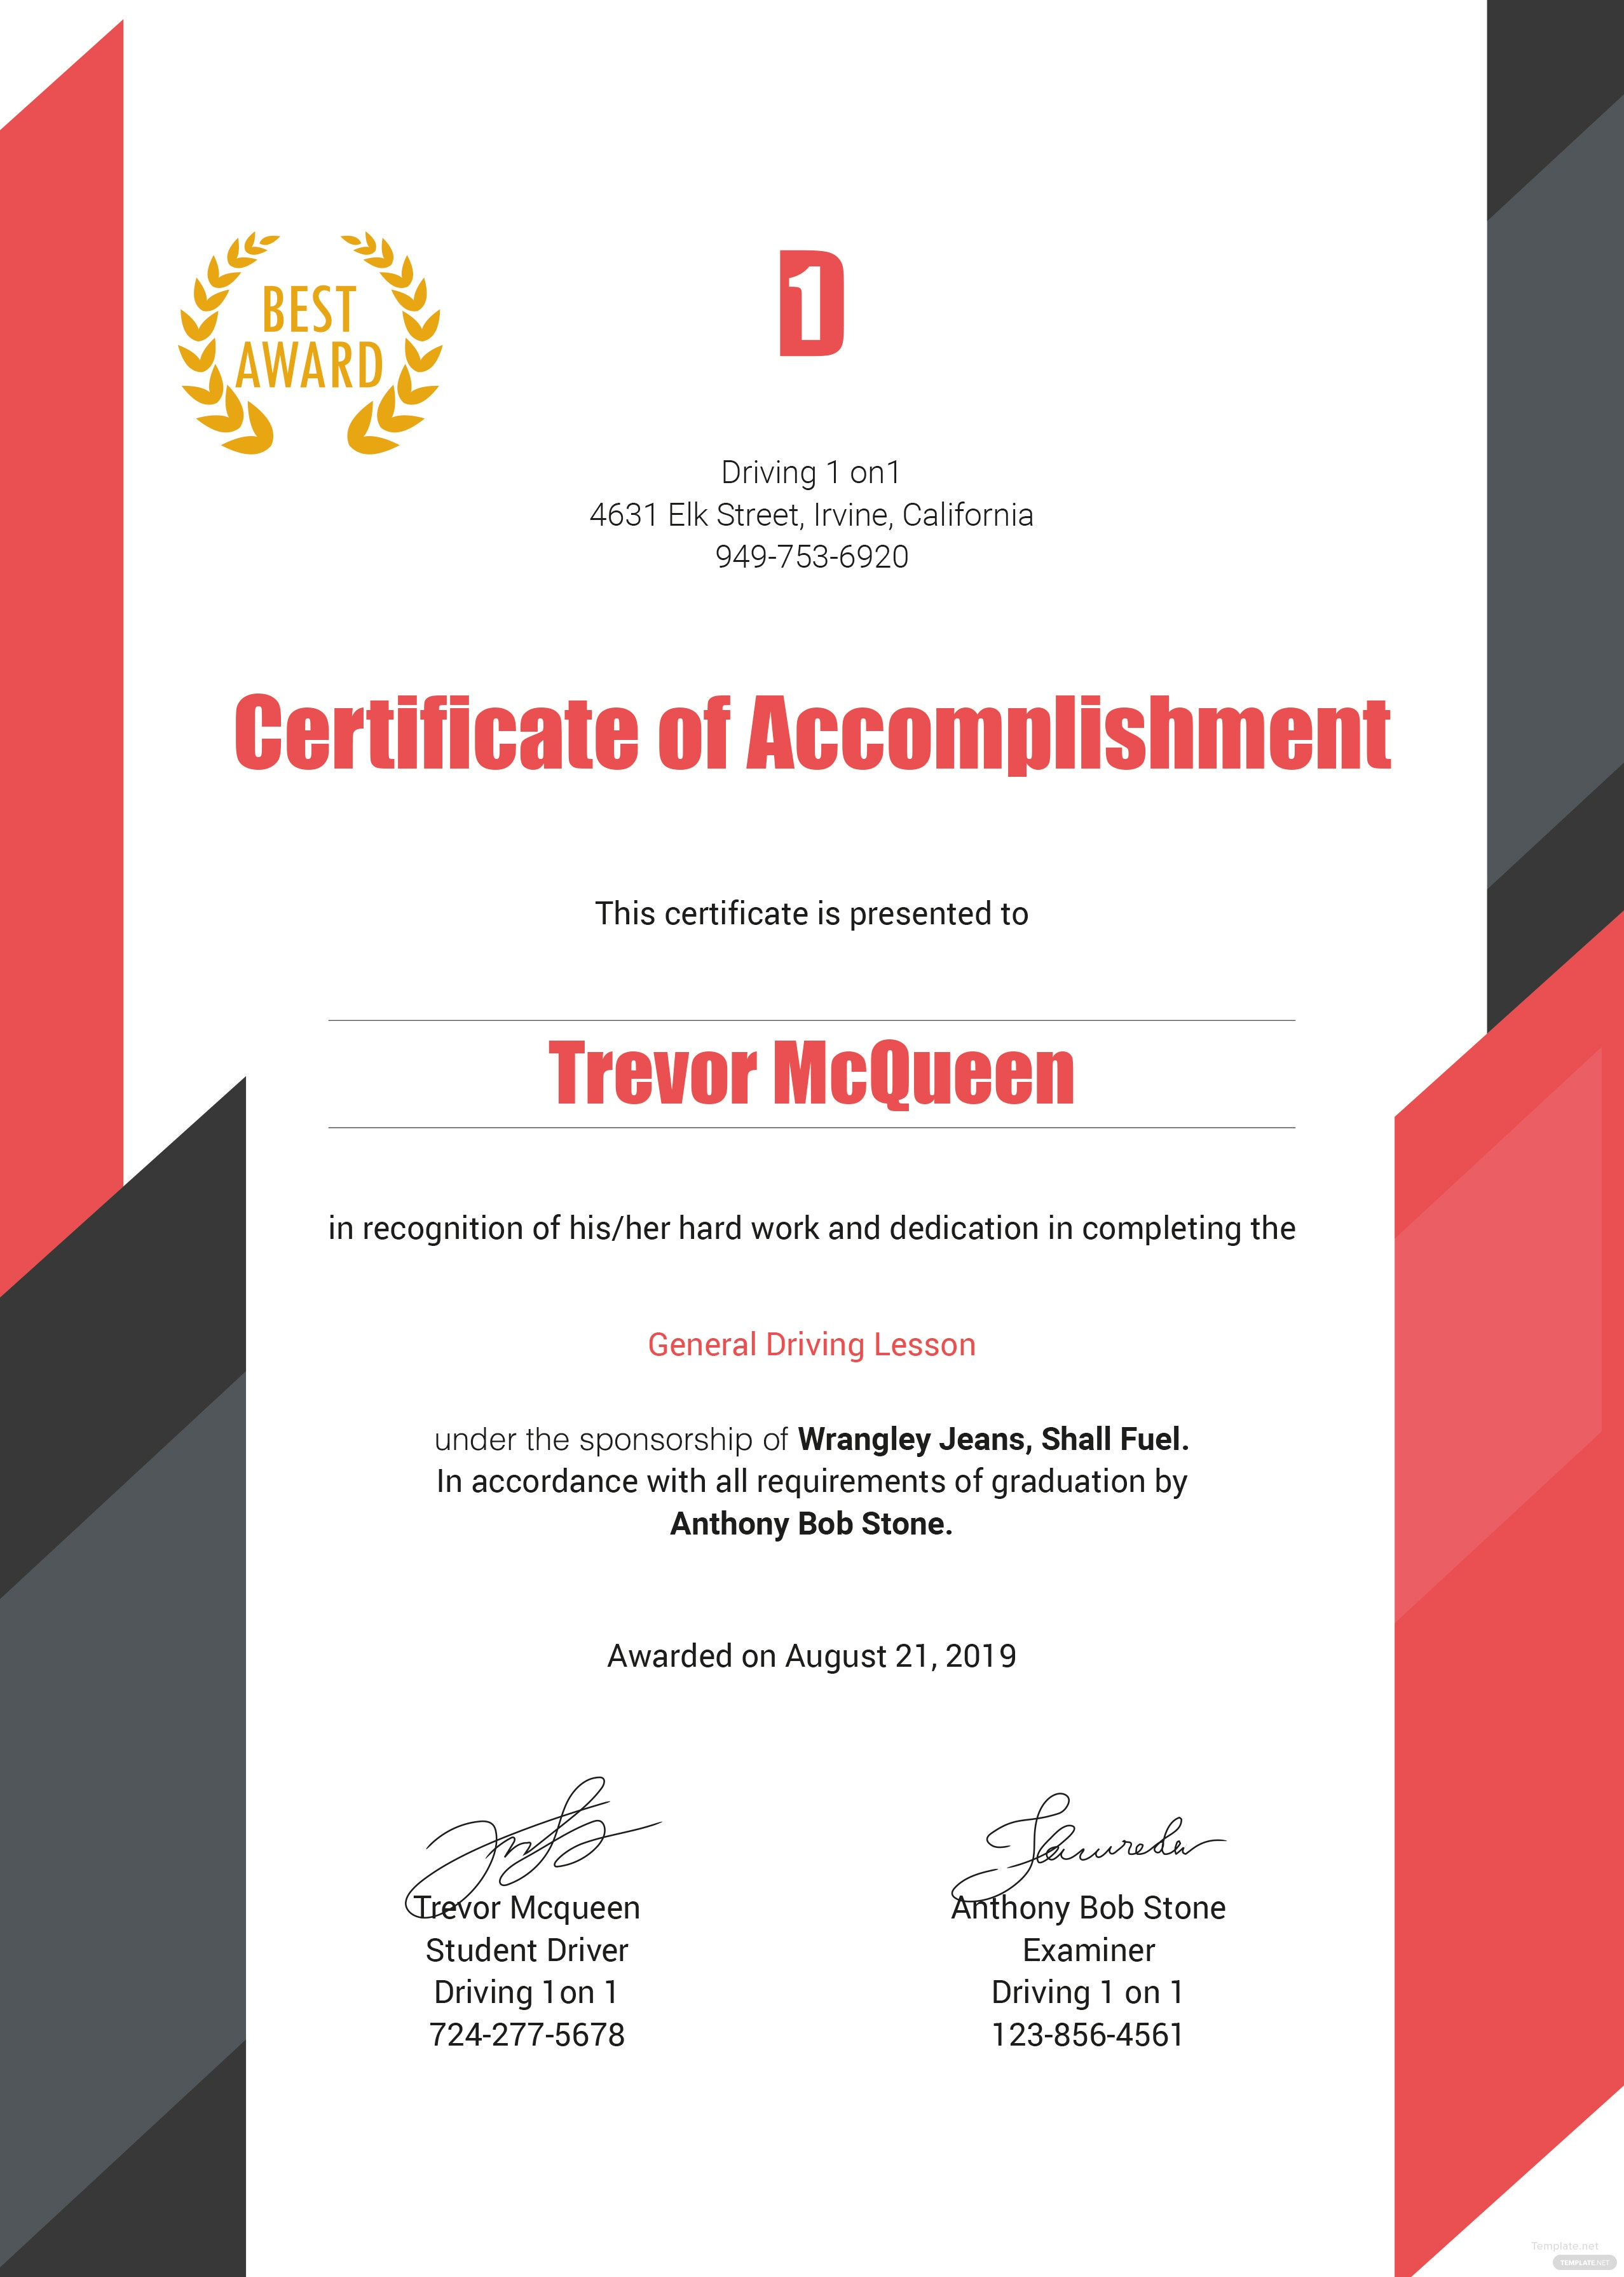 Free driving experience certificate template in microsoft word click to see full template driving experience certificate template free download yelopaper Images